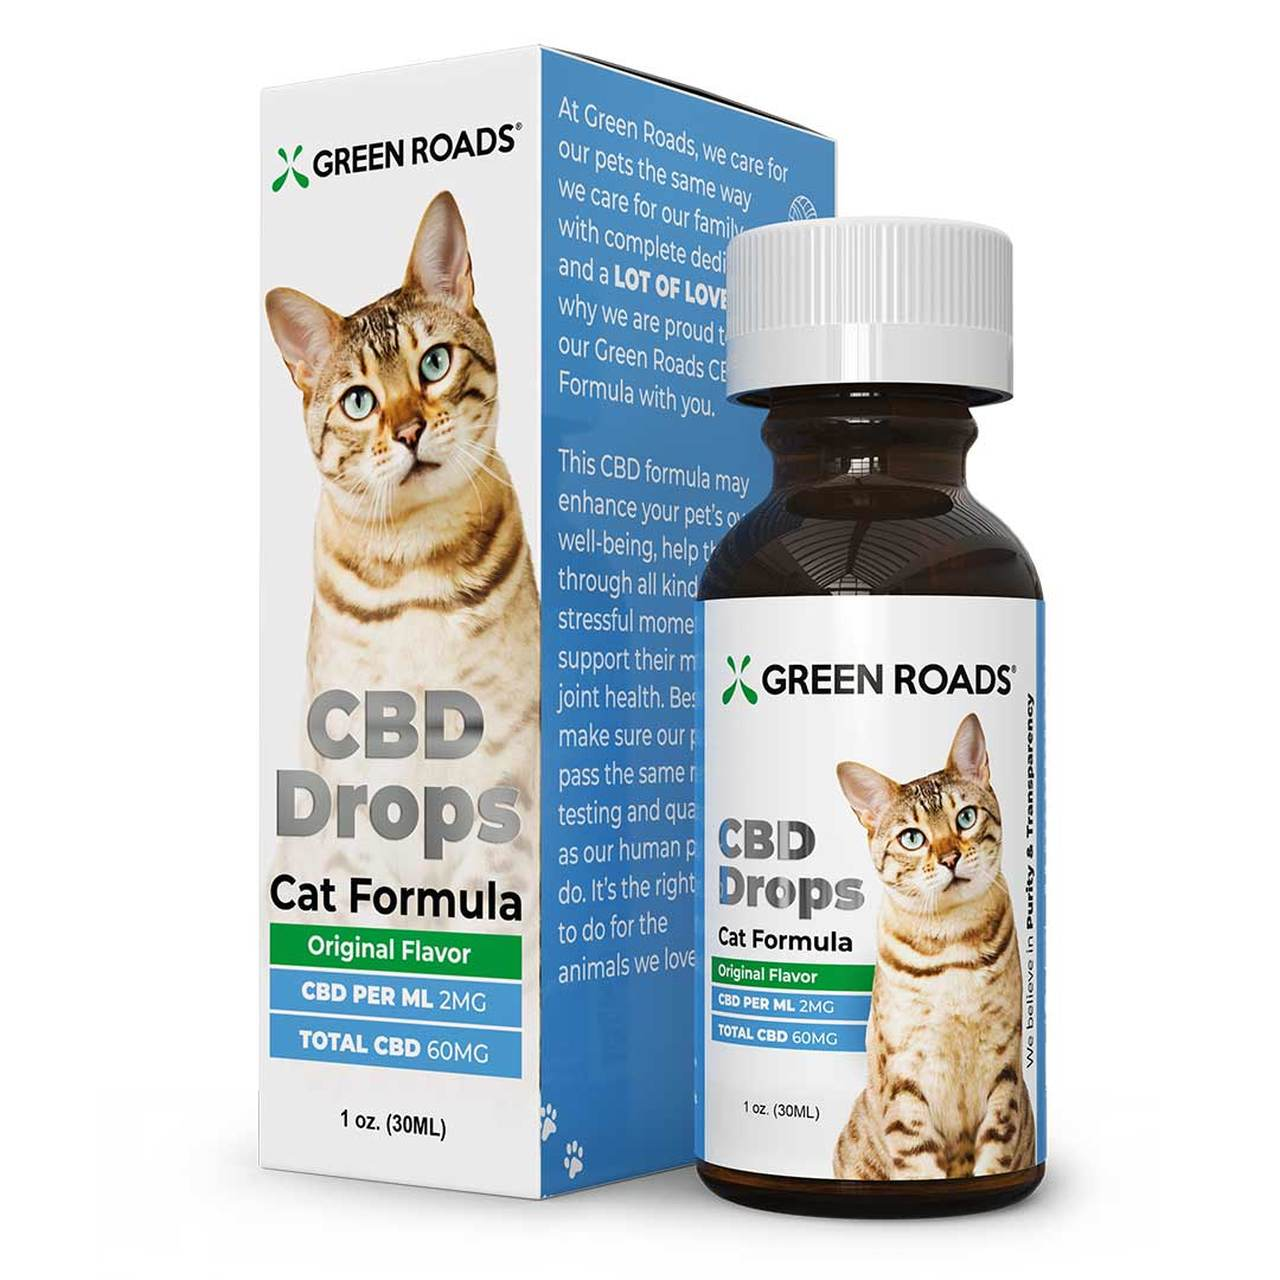 Green Roads, Pet CBD Oil Drops Cat, Broad Spectrum THC-Free, 1oz, 60mg of CBD